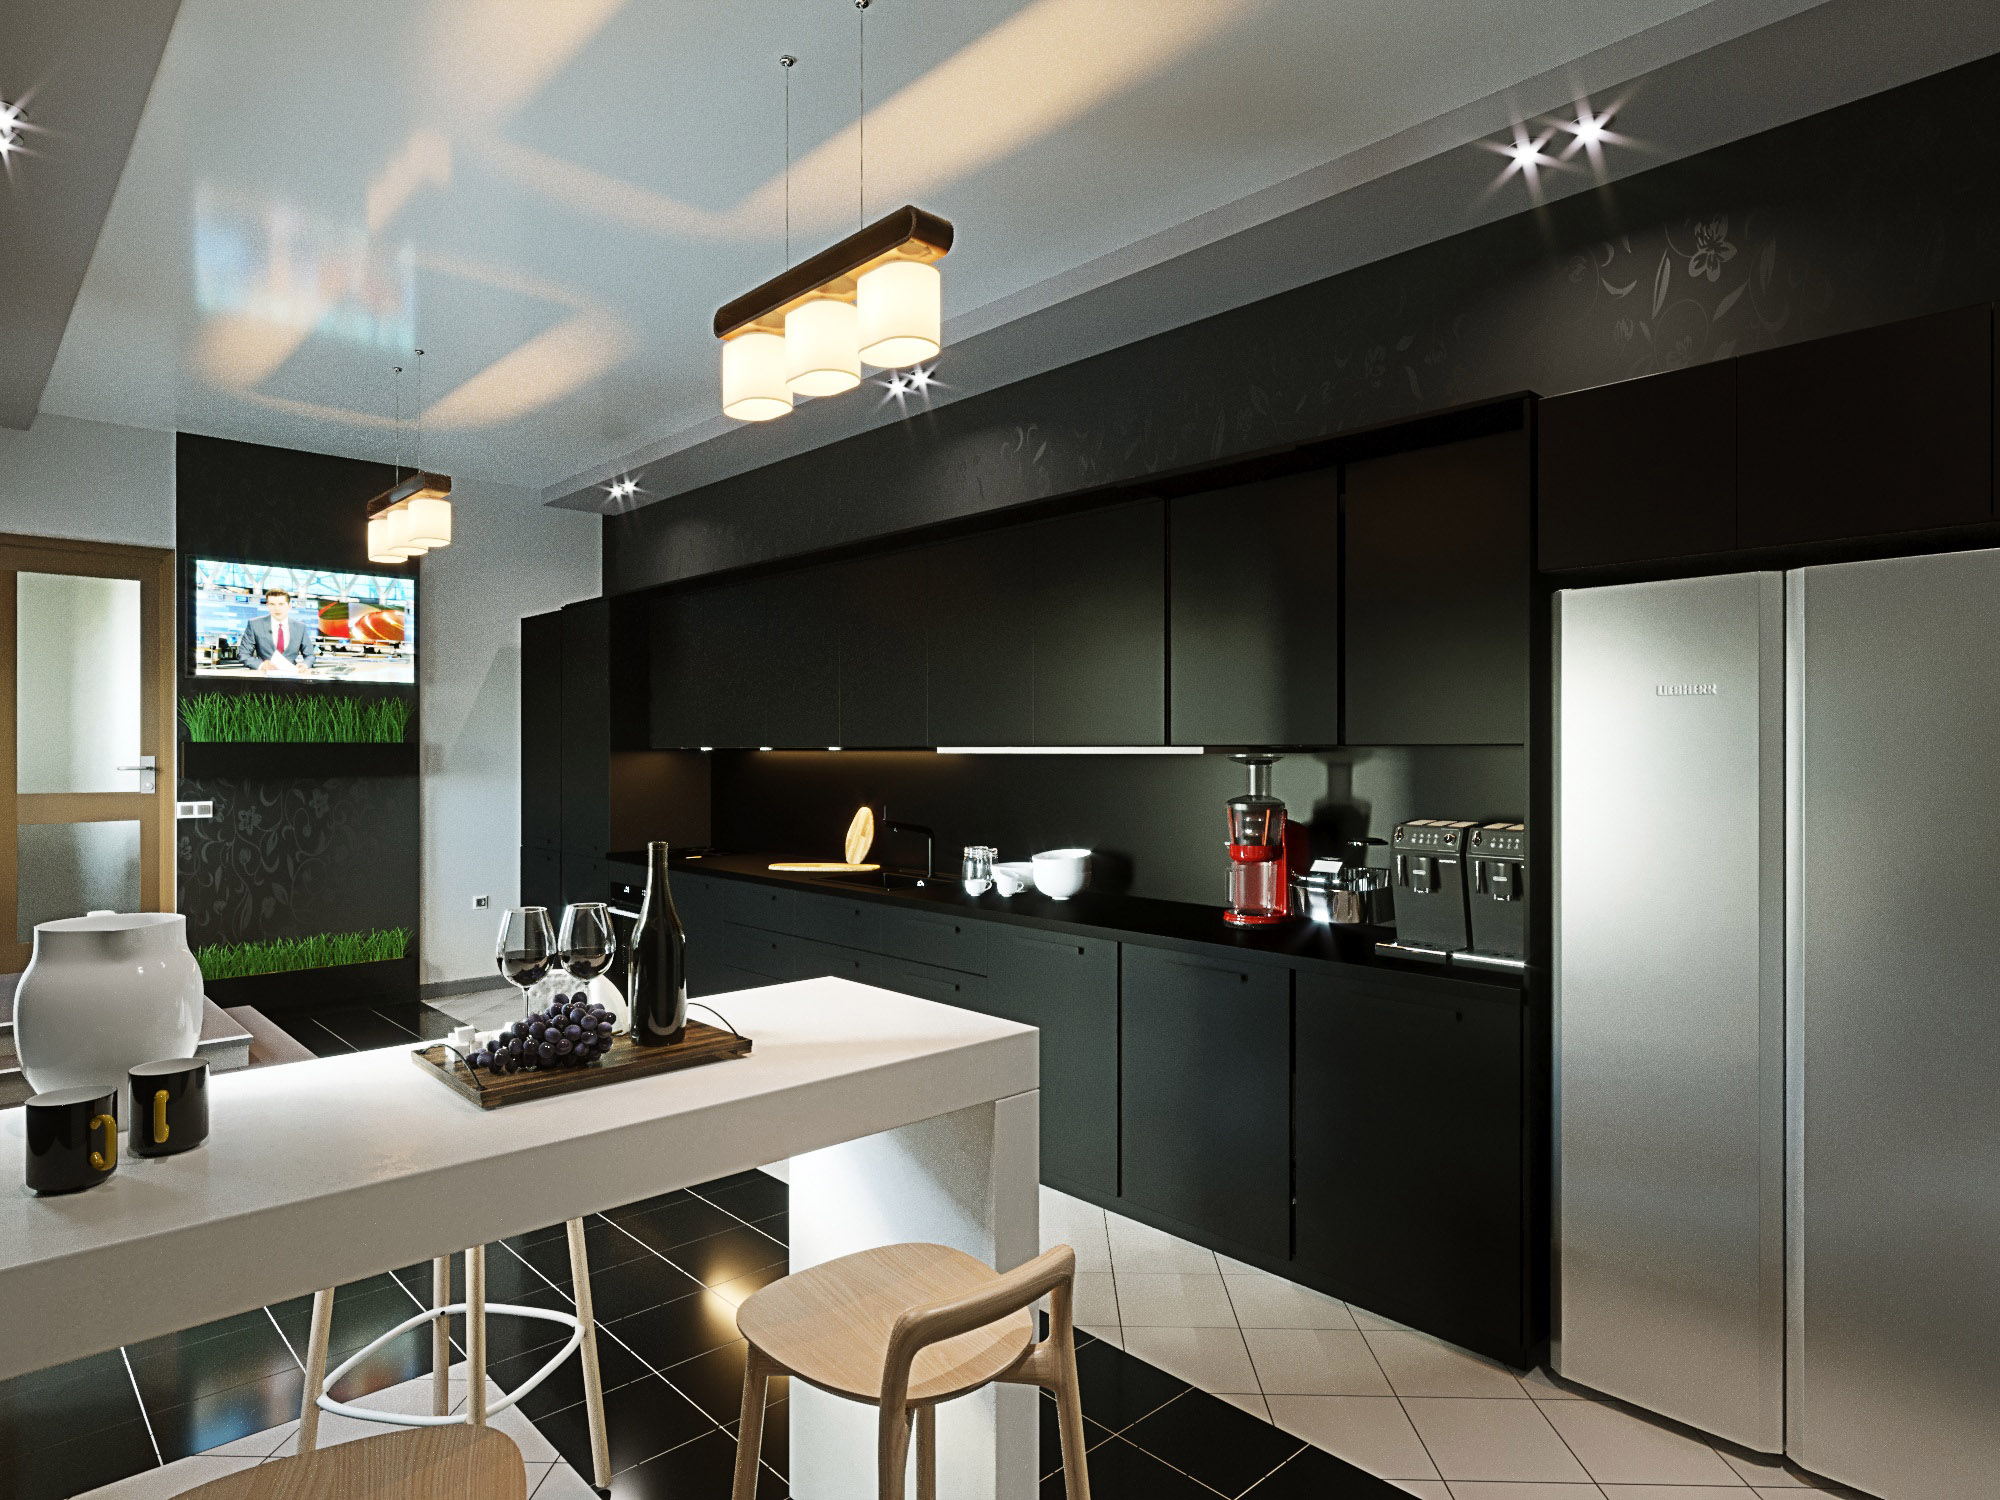 Kitchen in a private house in ArchiCAD corona render image